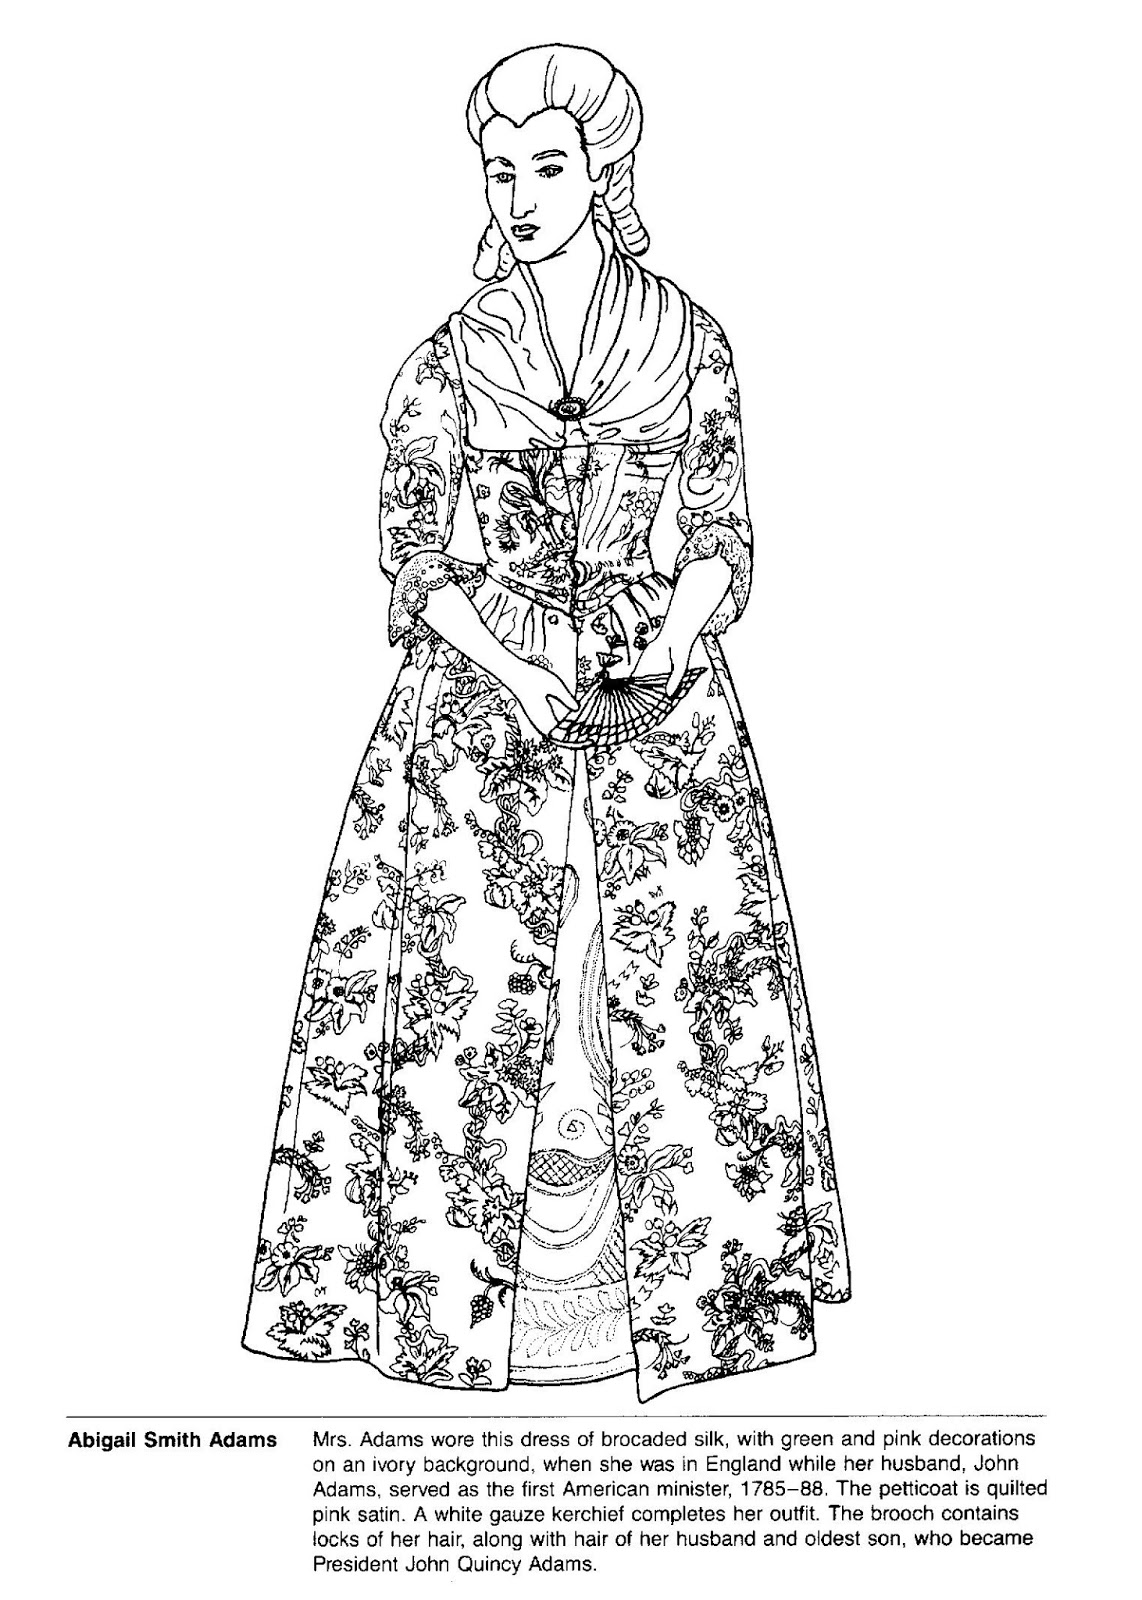 a smithsonian coloring book first ladies gowns i meant to include this abigail adams coloring page with the paper doll i posted yesterday